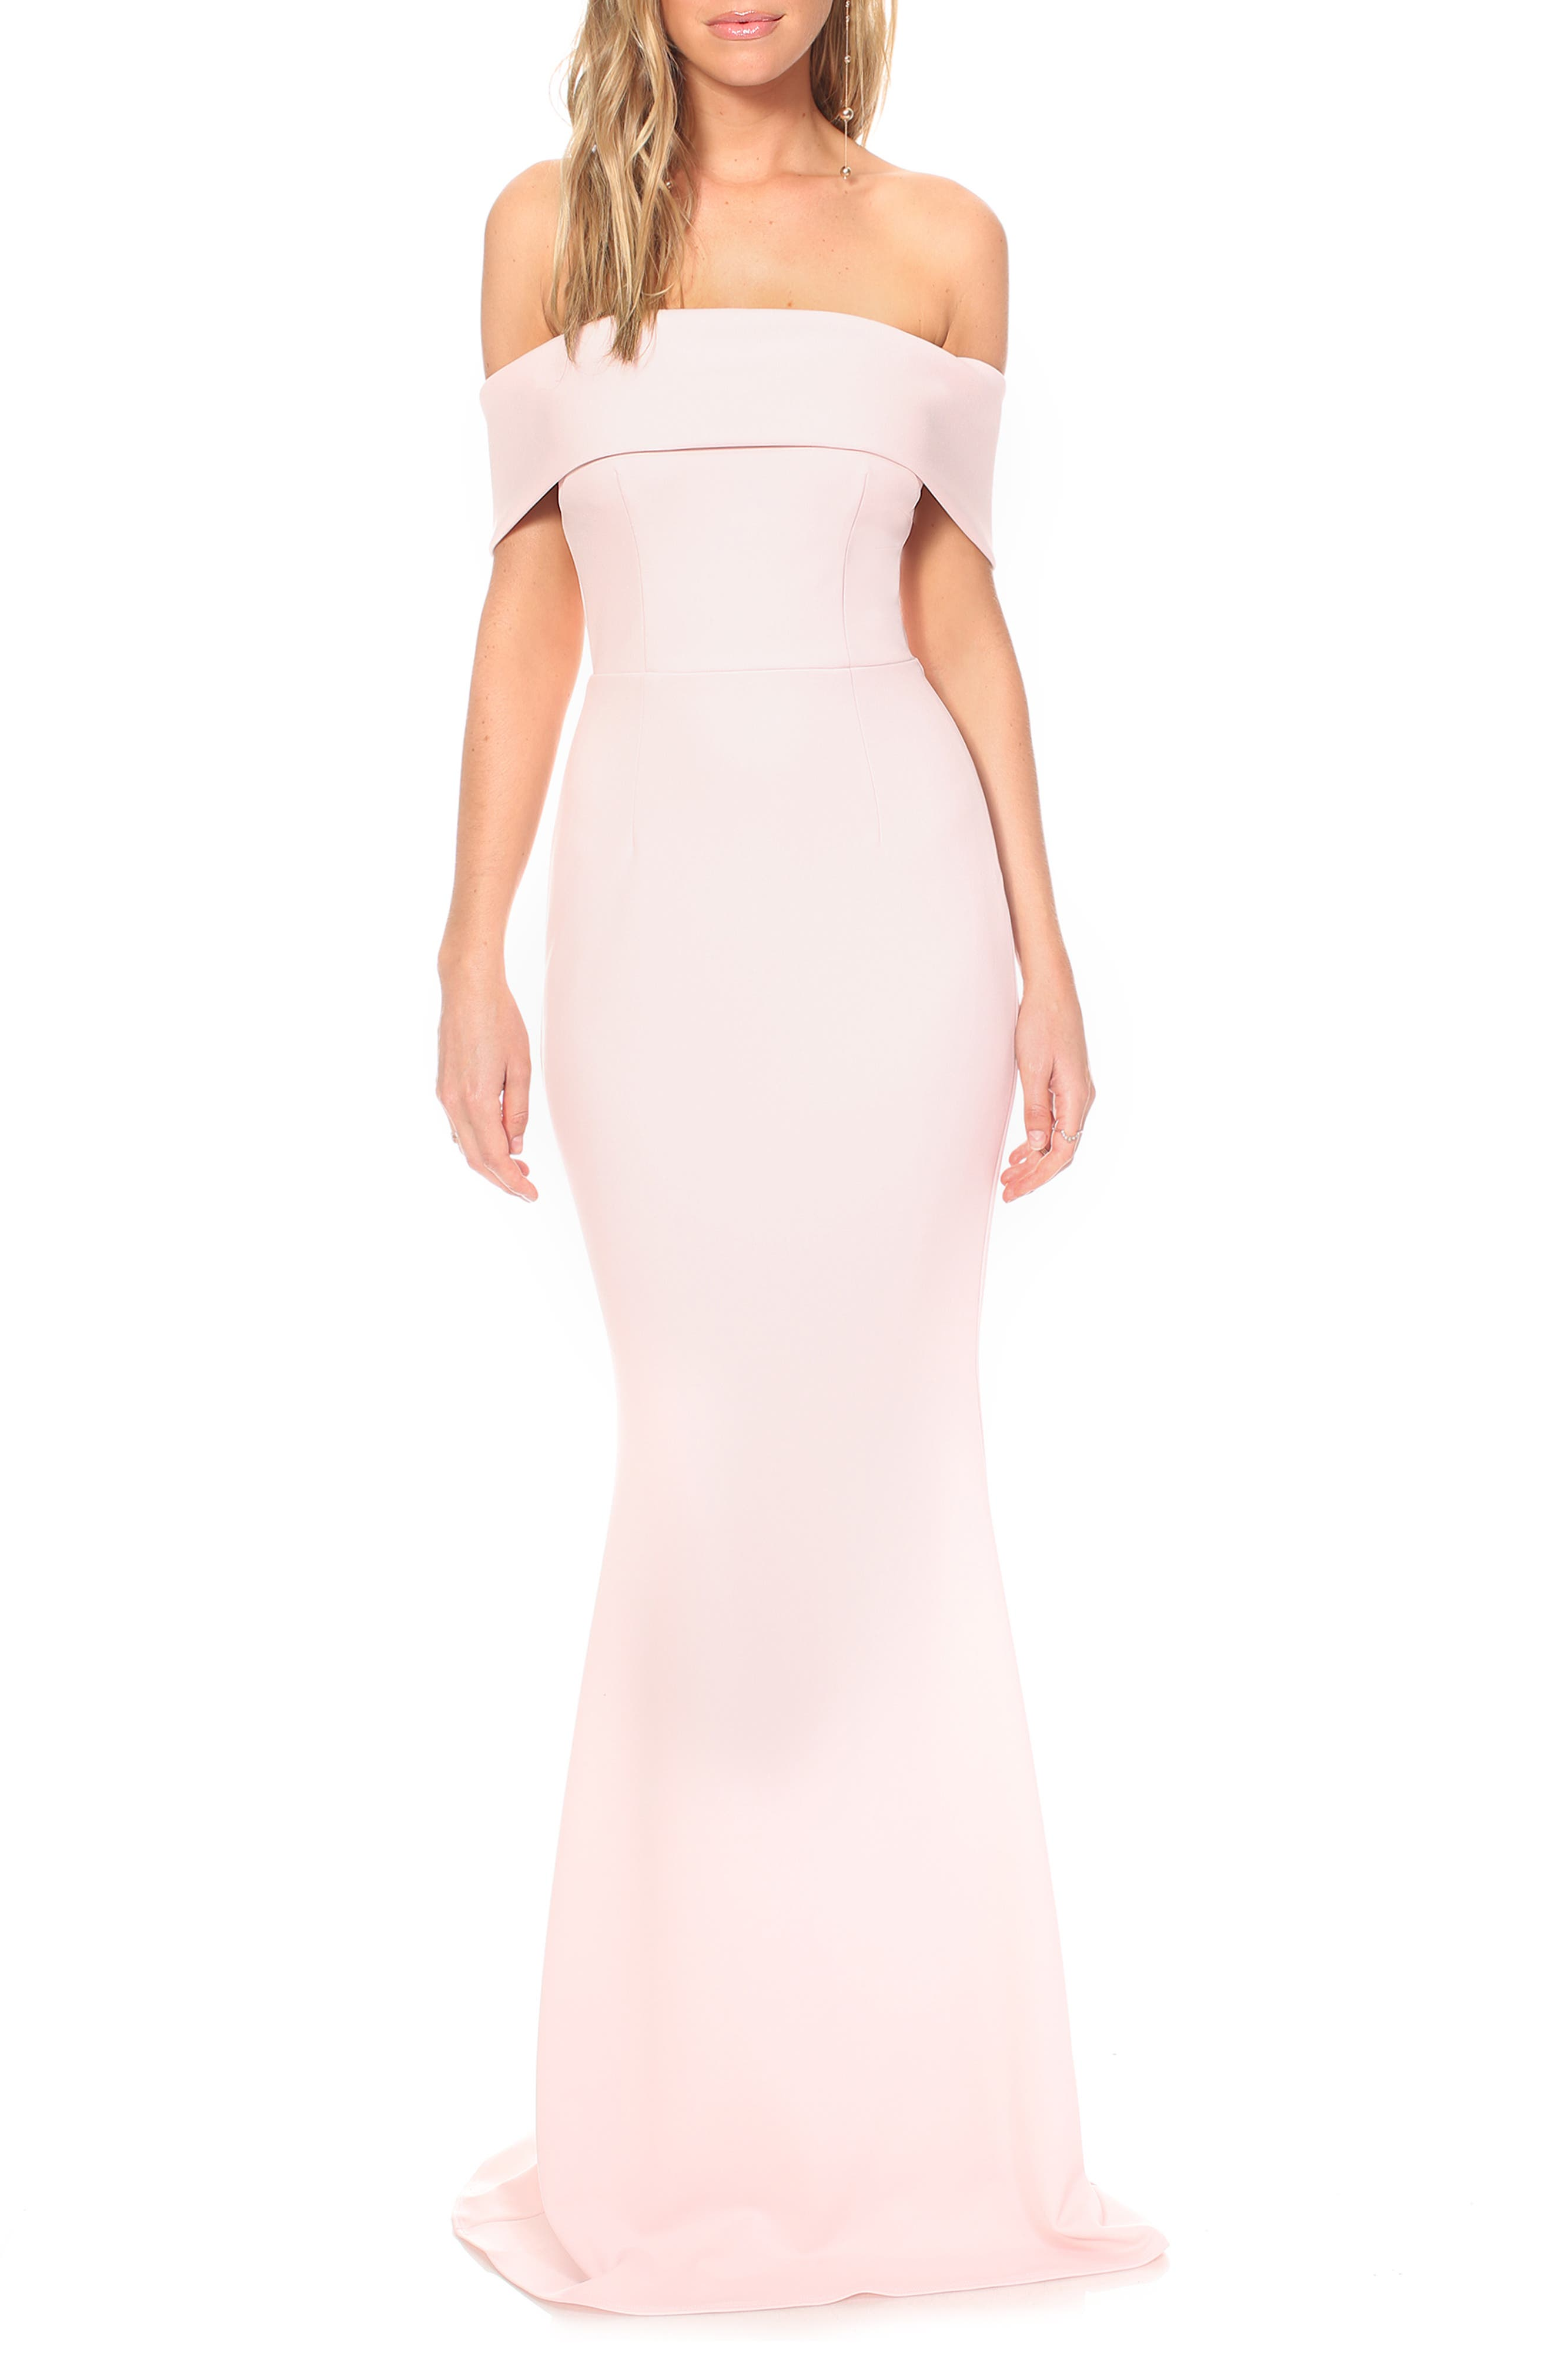 Katie May Legacy Crepe Body-Con Gown, Pink